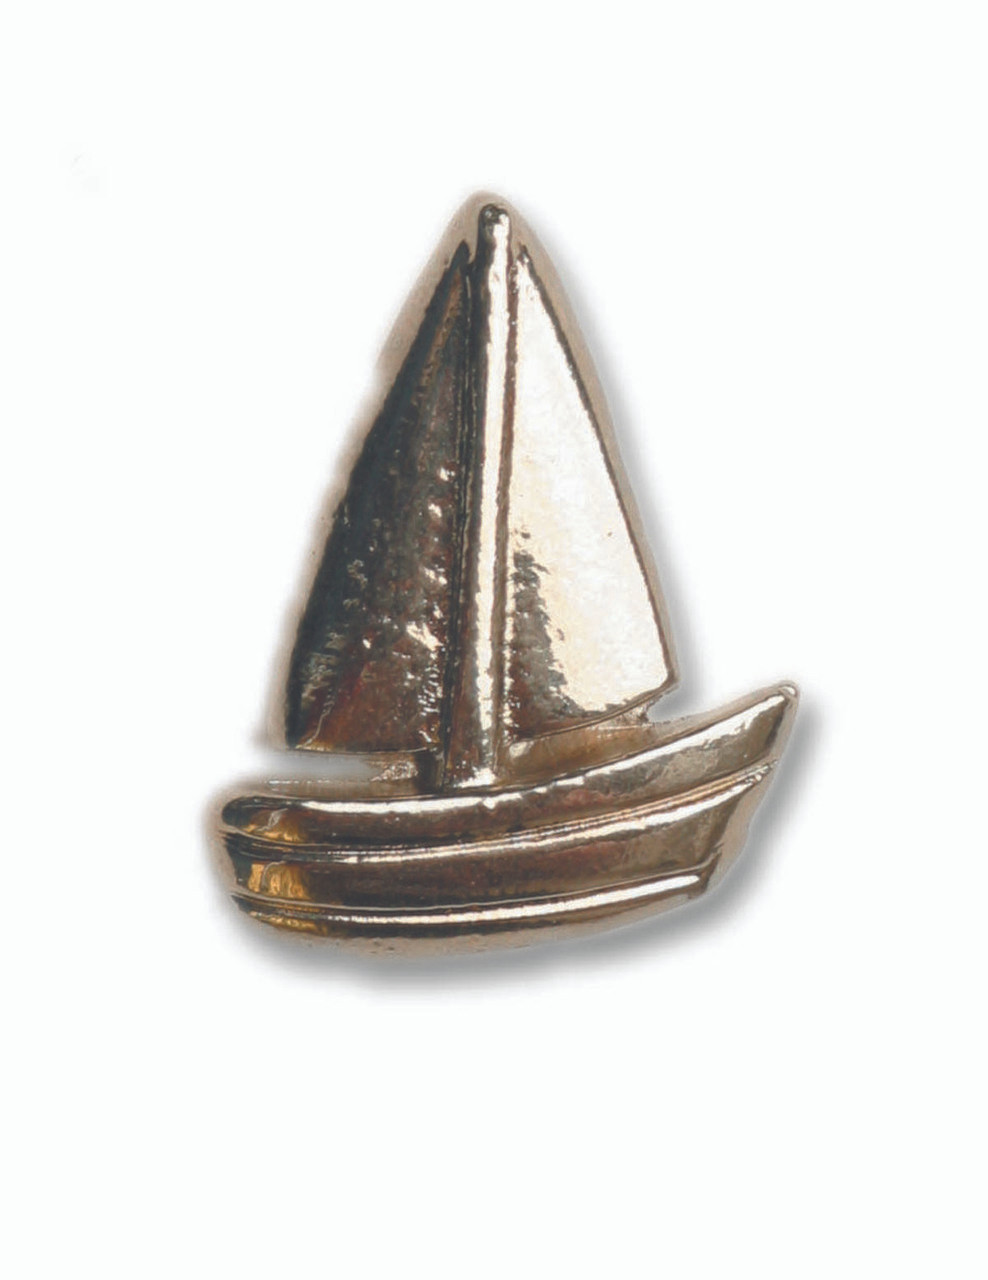 Simple Sailboat Cabinet Hardware Knob